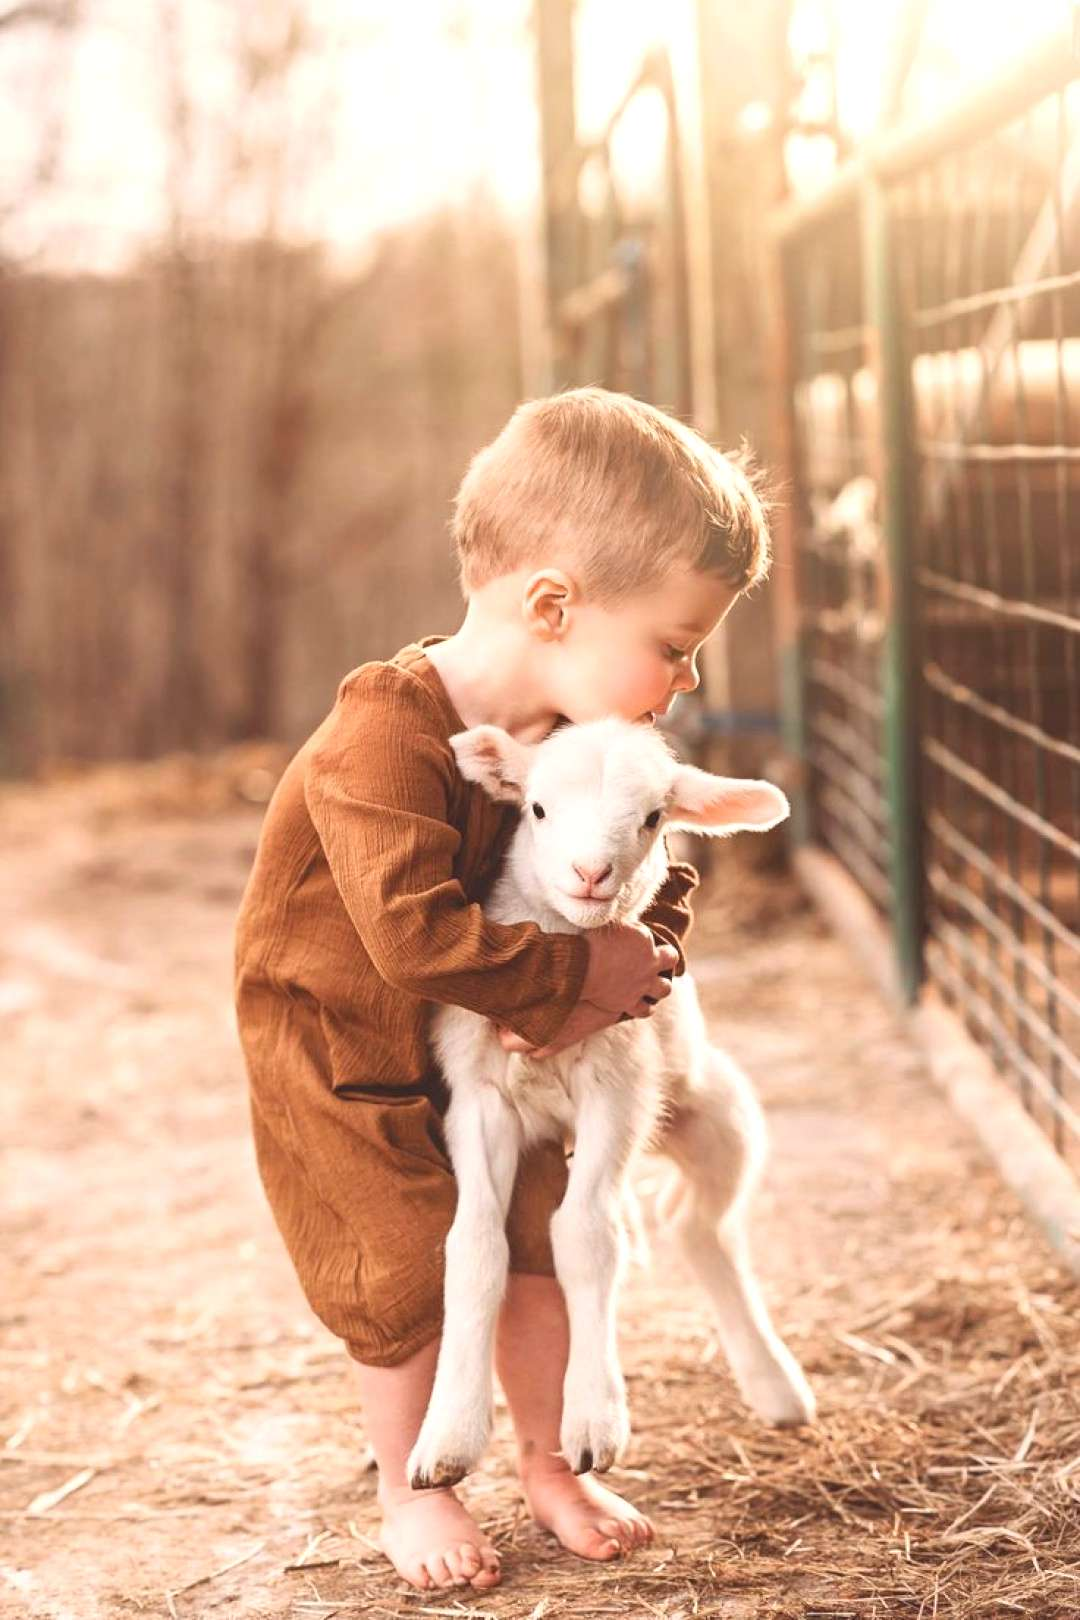 Spring pictures for boys and lambs, pictures from the farm, childhood and home ... - Spring pictur